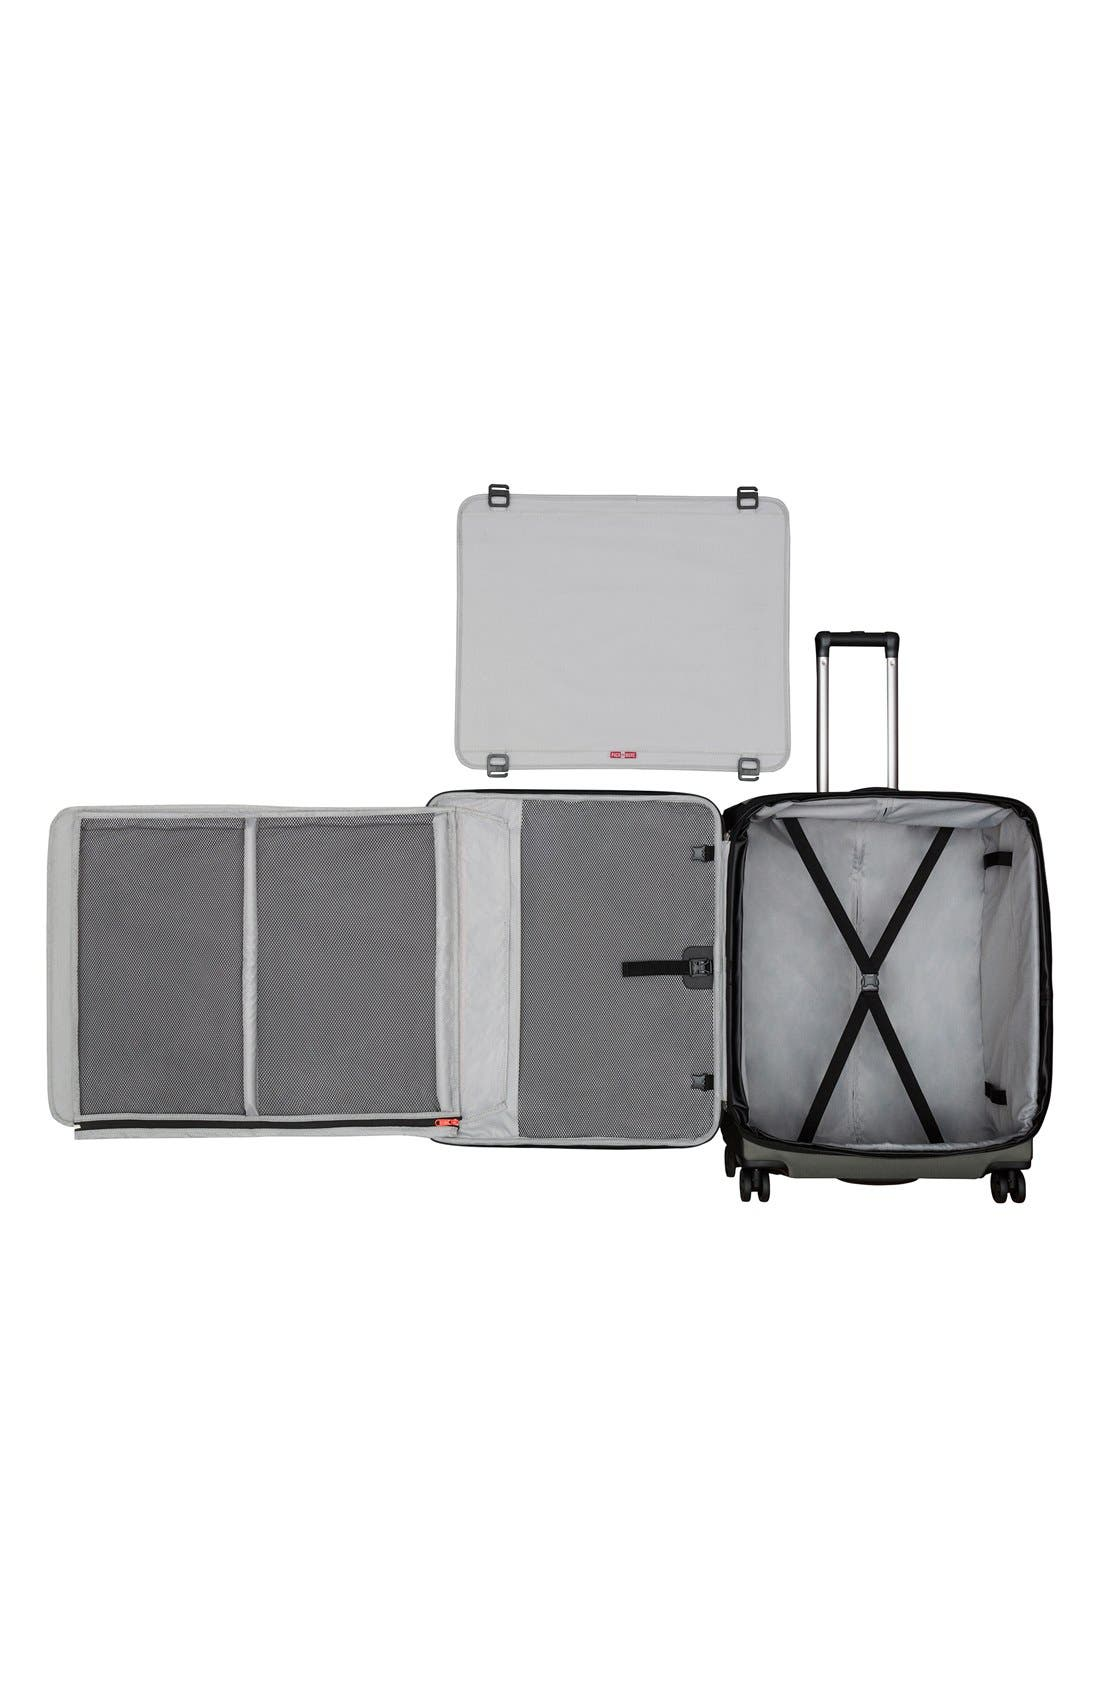 WT 5.0 Dual Caster Wheeled 27-Inch Packing Case,                             Alternate thumbnail 6, color,